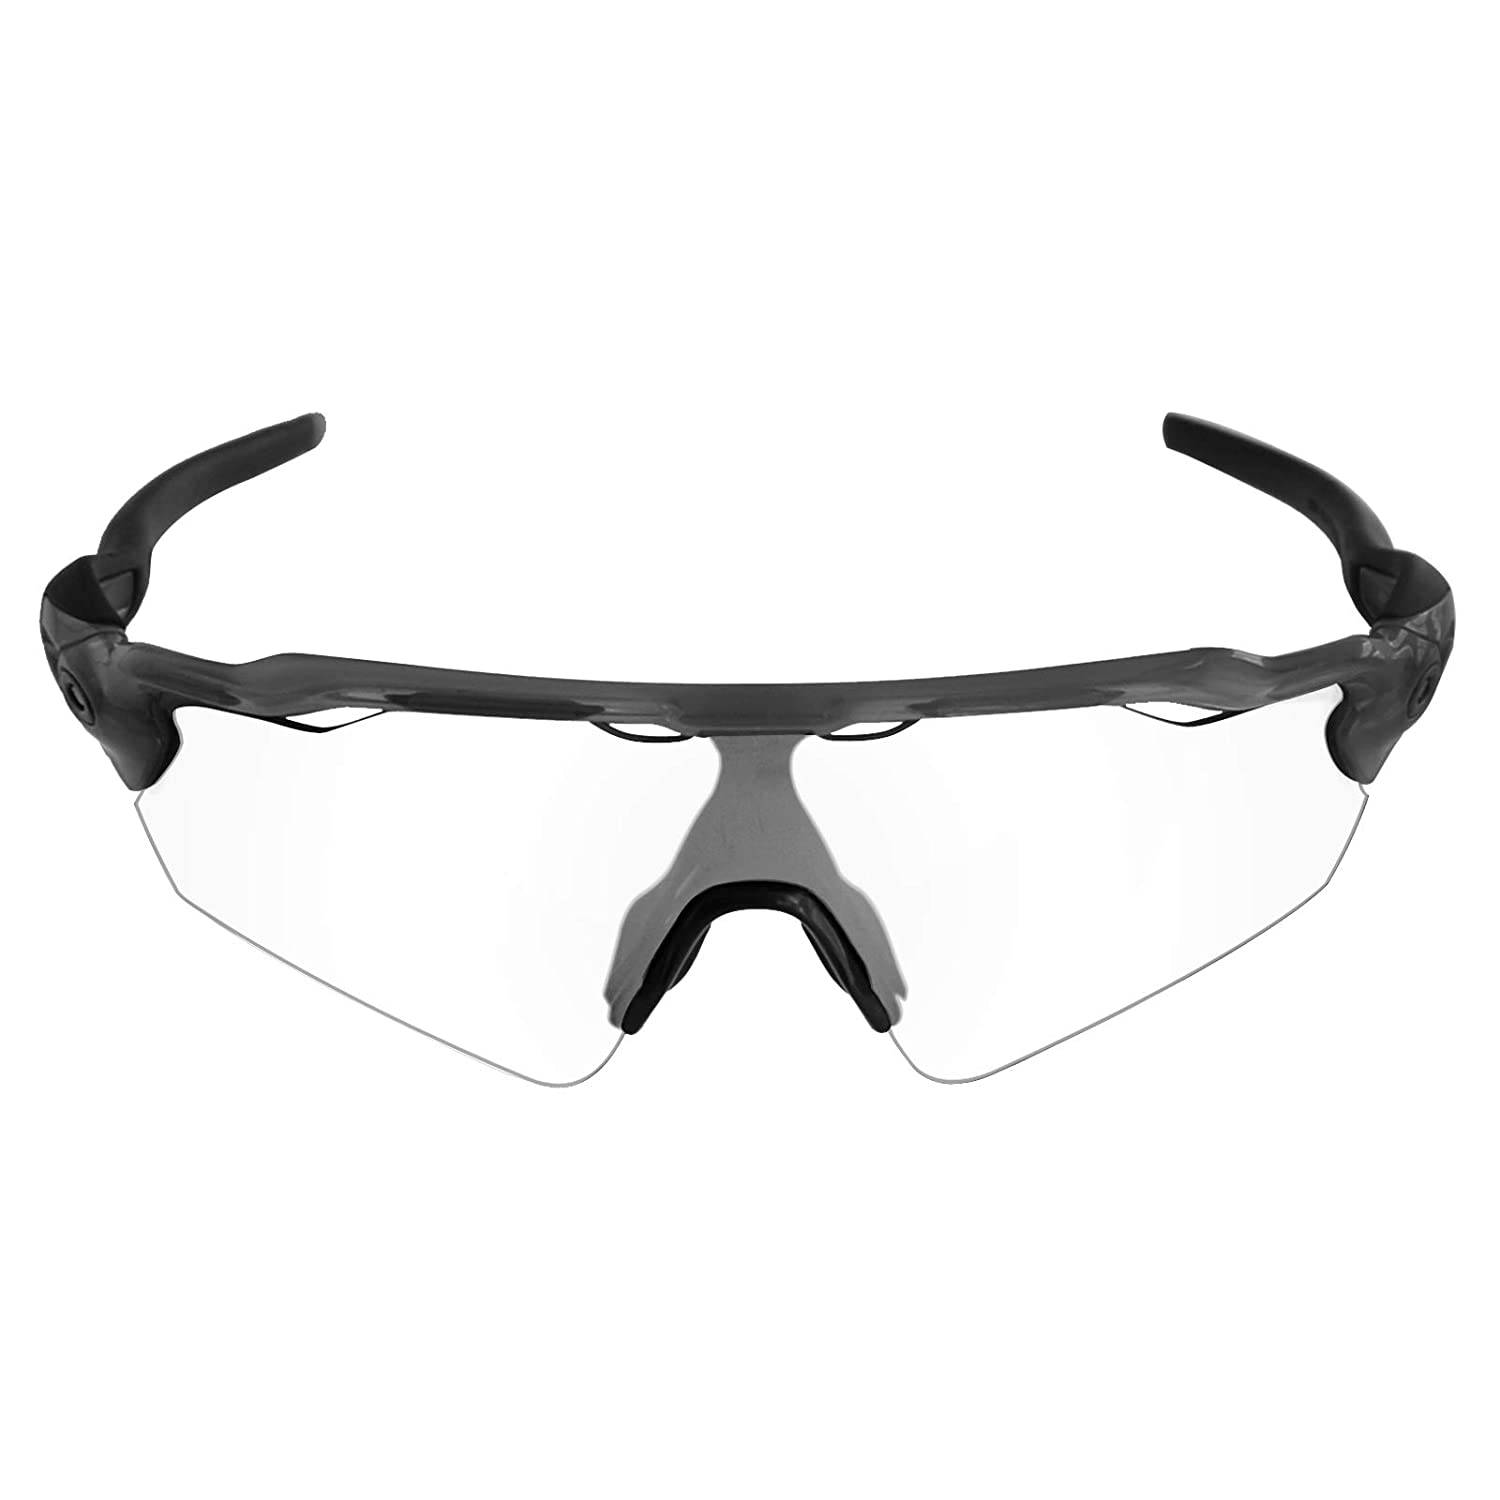 0b95078e408 Amazon.com  Mryok UV400 Replacement Lenses for Oakley Radar EV Path - HD  Clear  Clothing